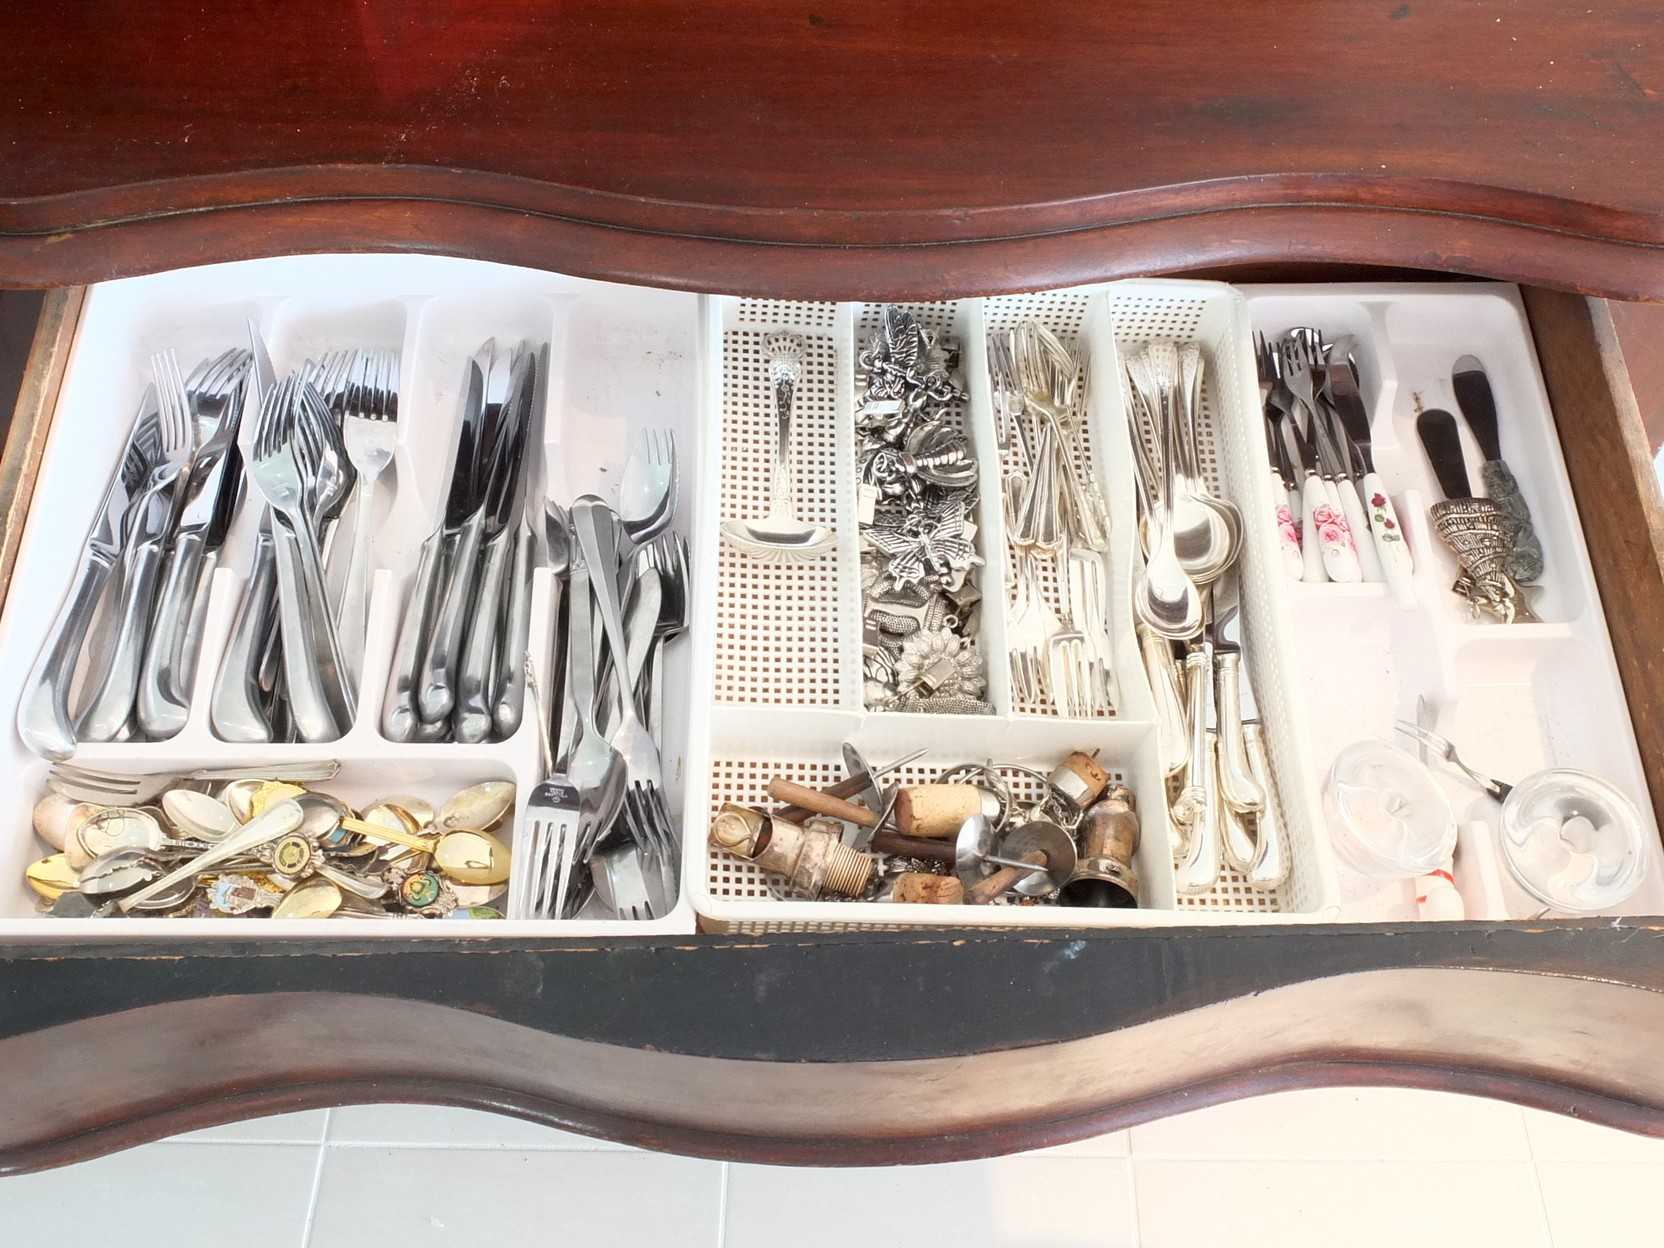 'Large Group of Silver Plate and Stainless Flatware, Including Fish Knives and Forks, Basting Spoons and More'